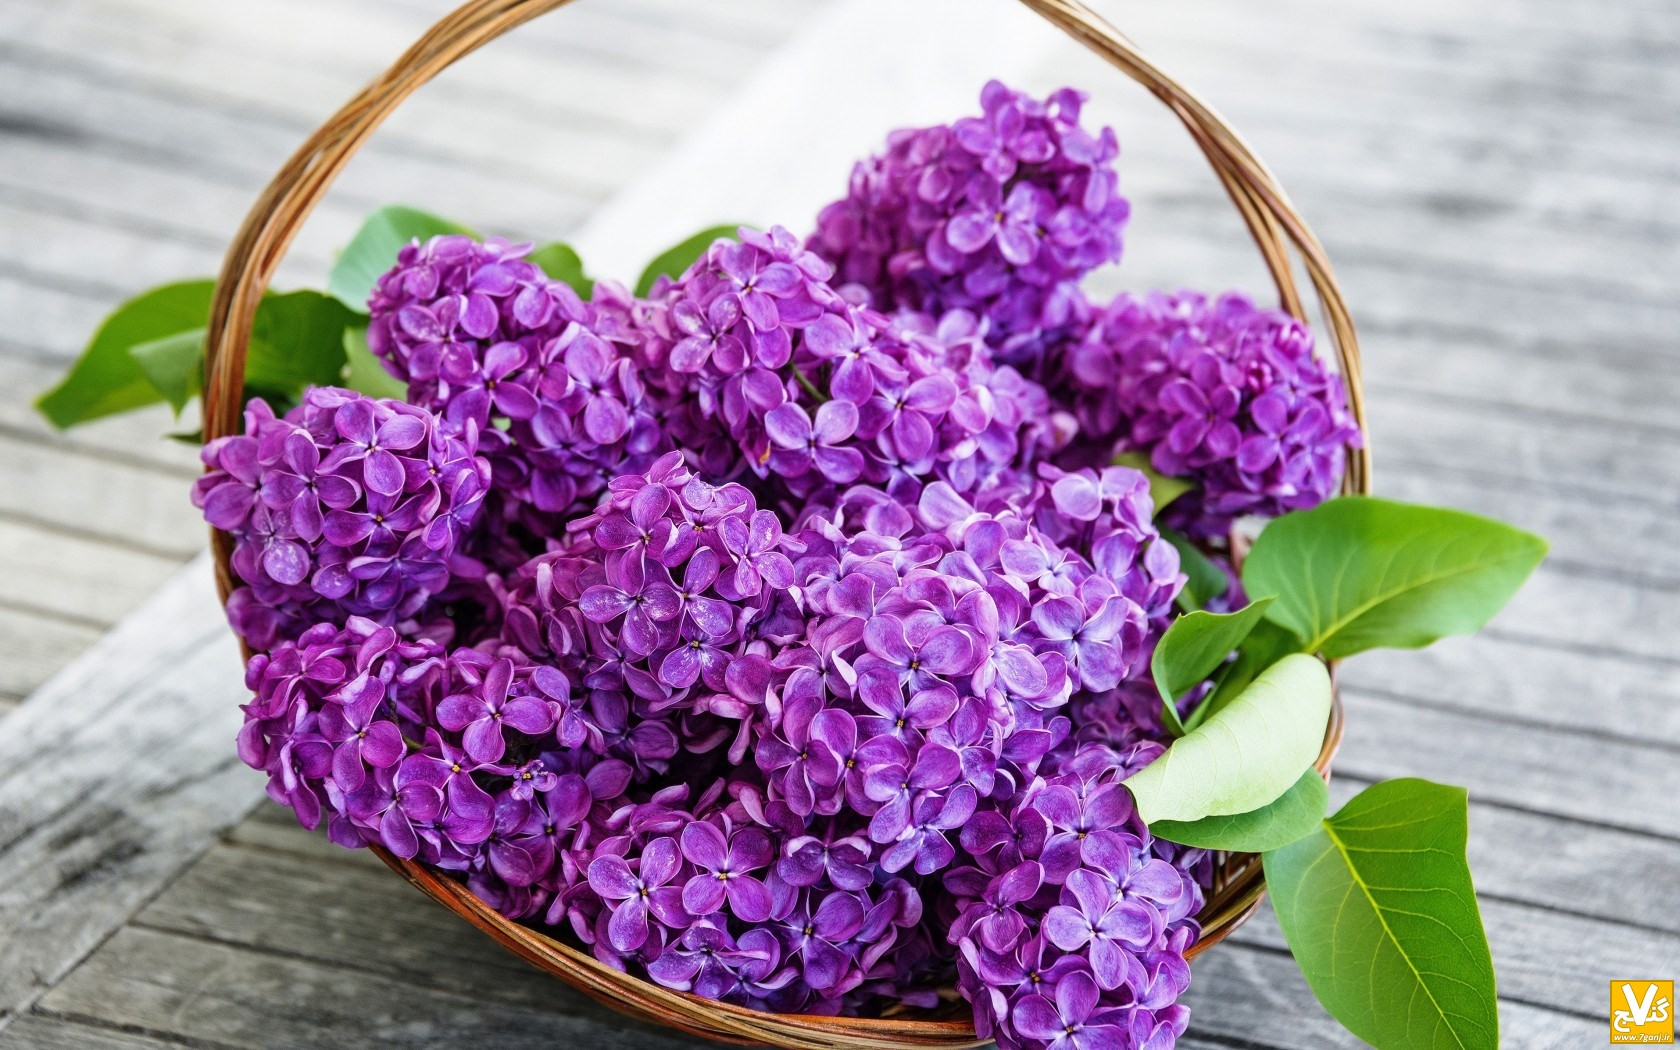 spring-lilac-flowers-purple-wallpaper-1680x1050